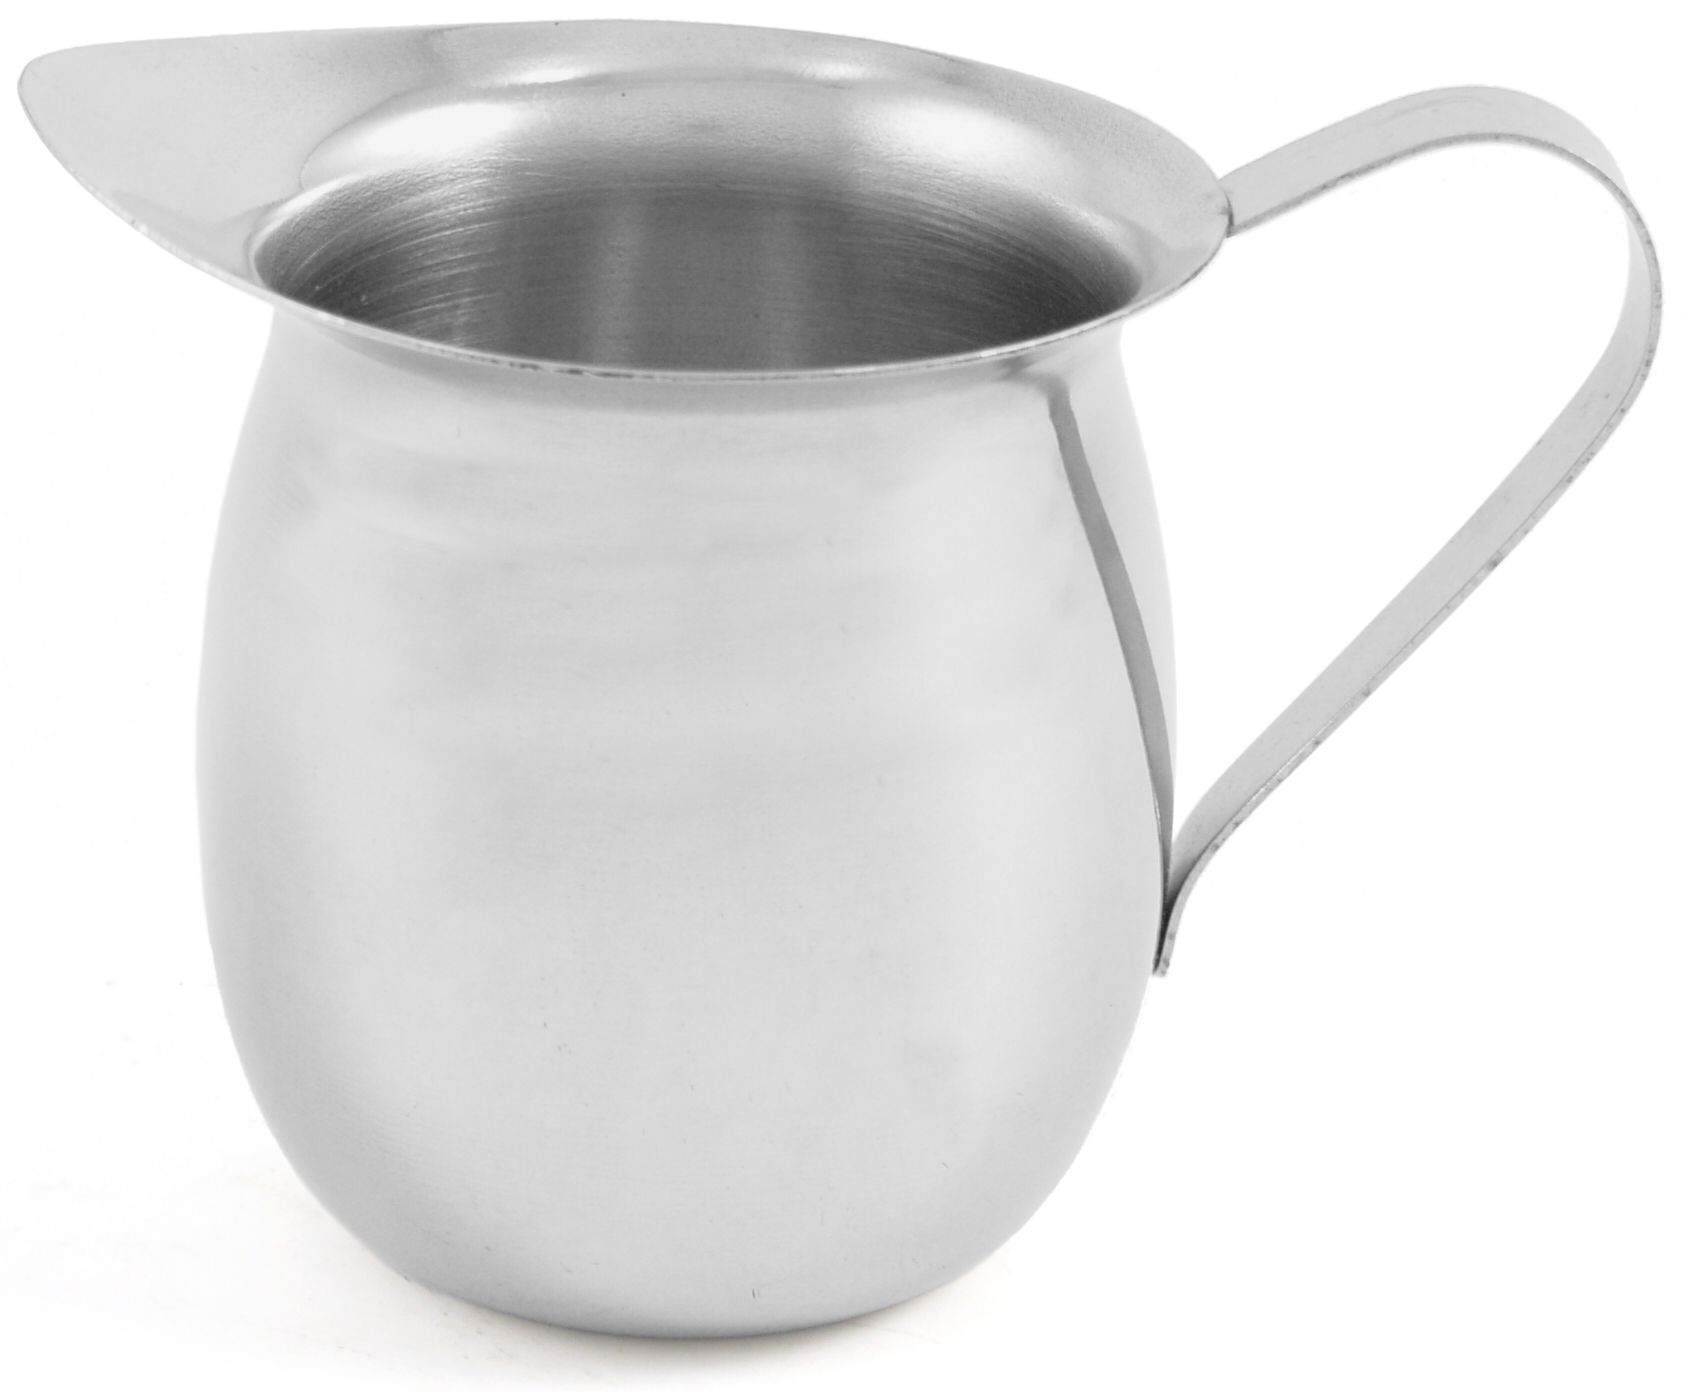 Stainless Steel Milk Creamer Pot /  Frothing Pitcher, 8 Ounce